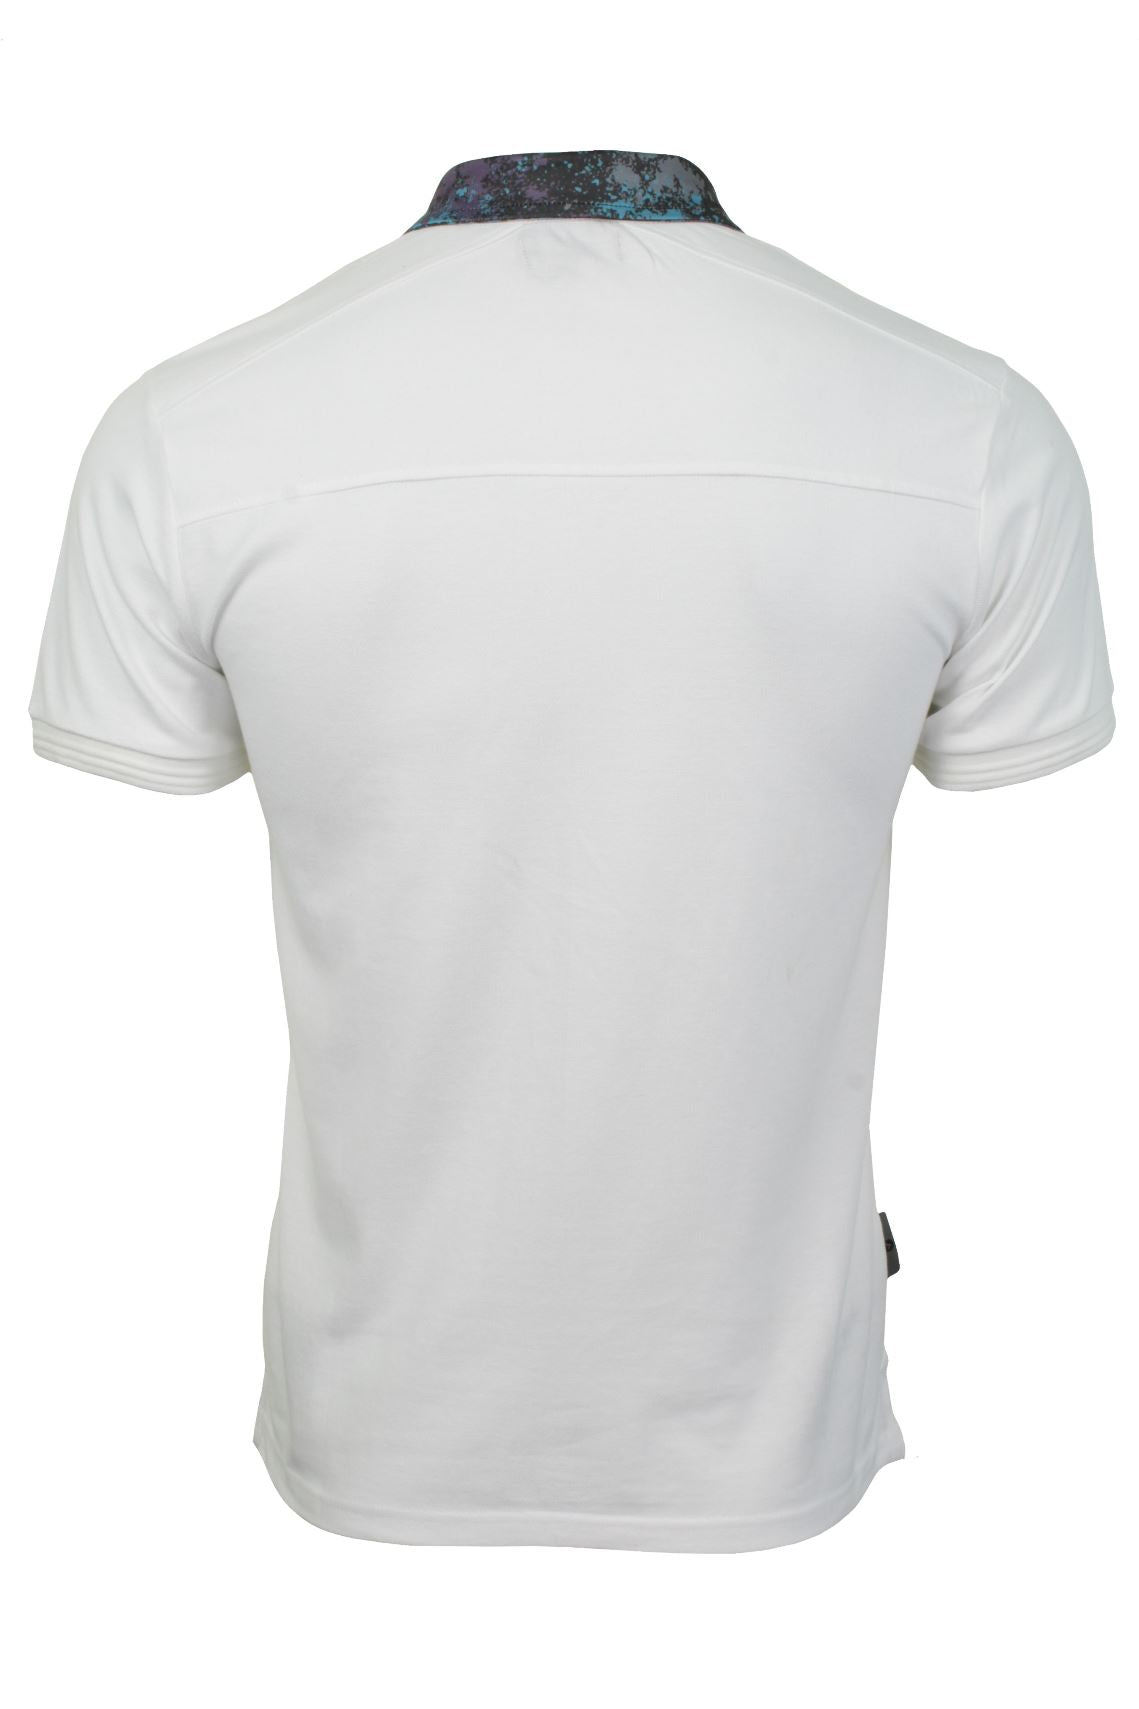 Mens Polo T-Shirt by Voi Jeans 'Ghost'-3